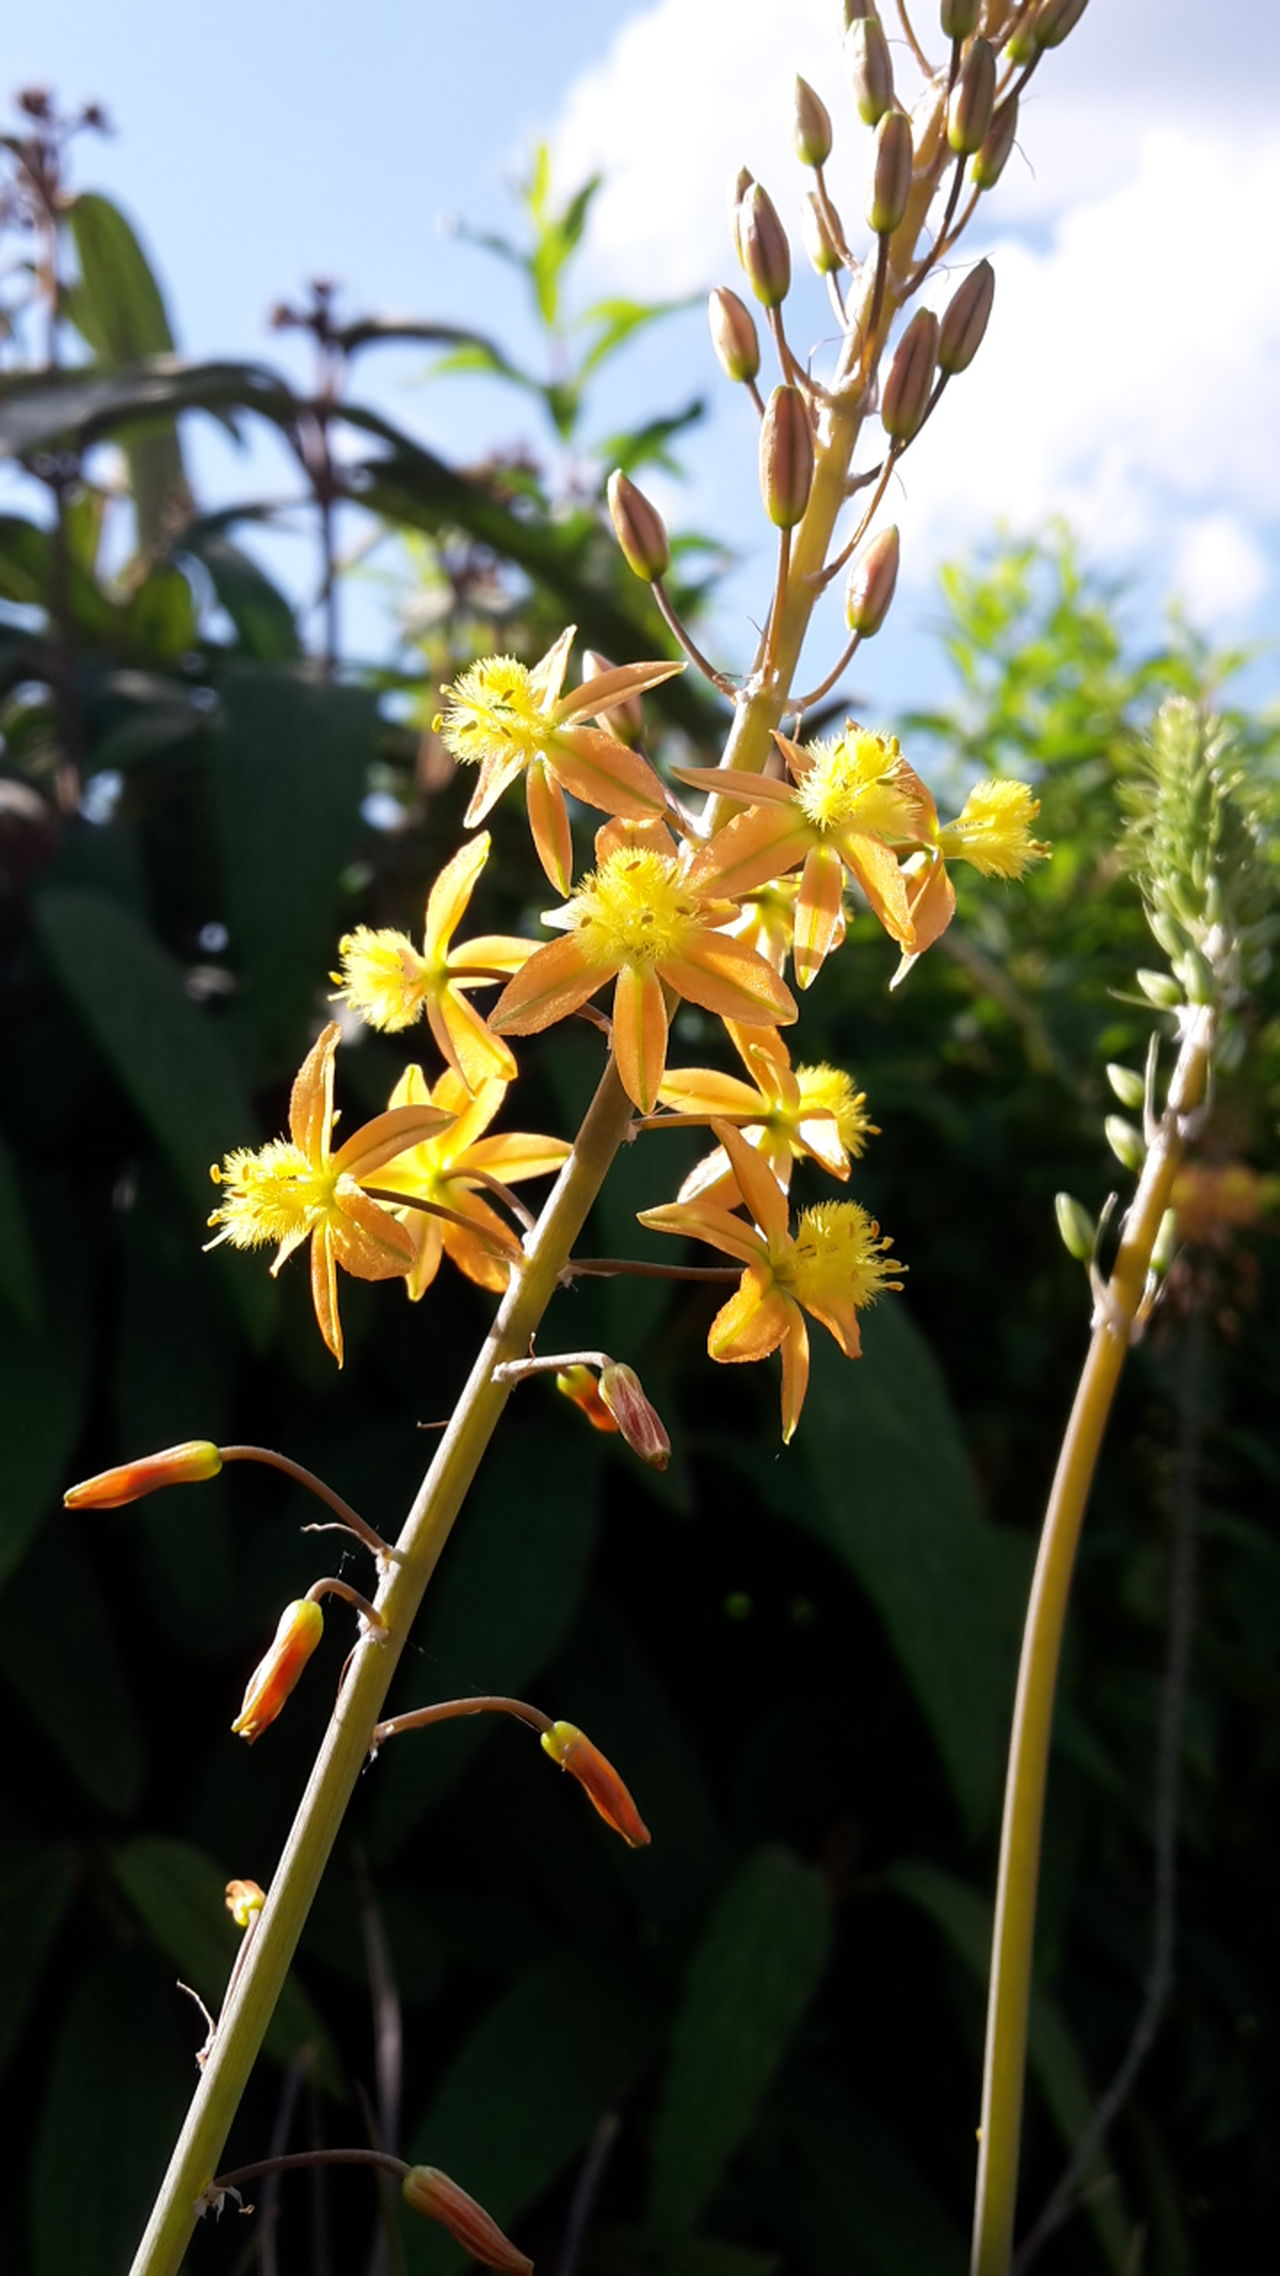 Bulbine Frutescens Medicuspflanze Nahaufnahme 43 Golden Moments